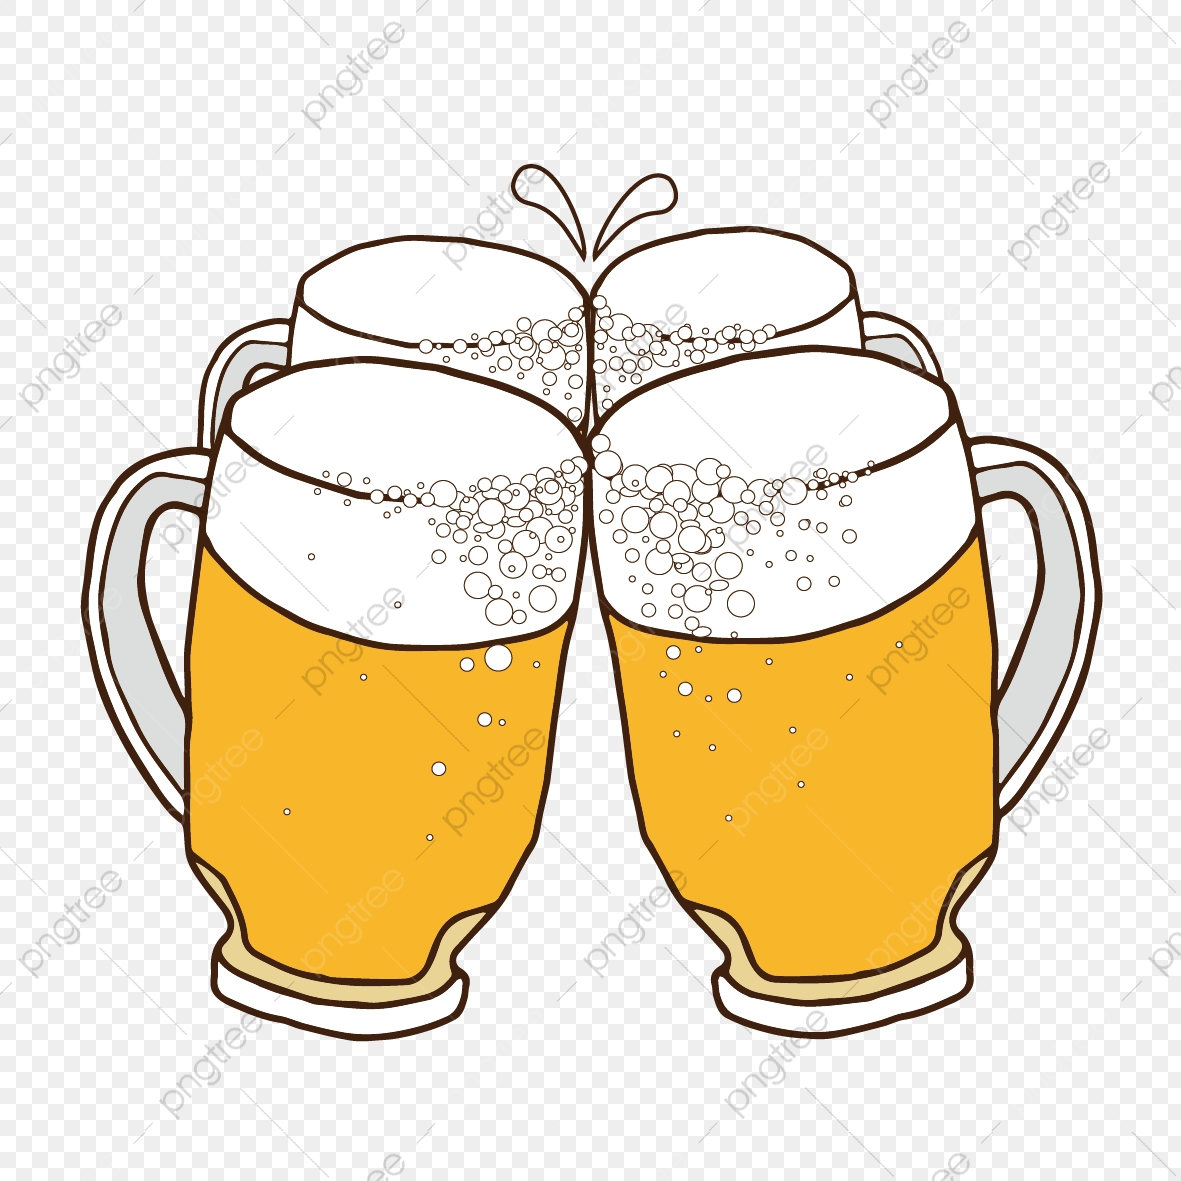 Beer clipart file. Free image buckle clink